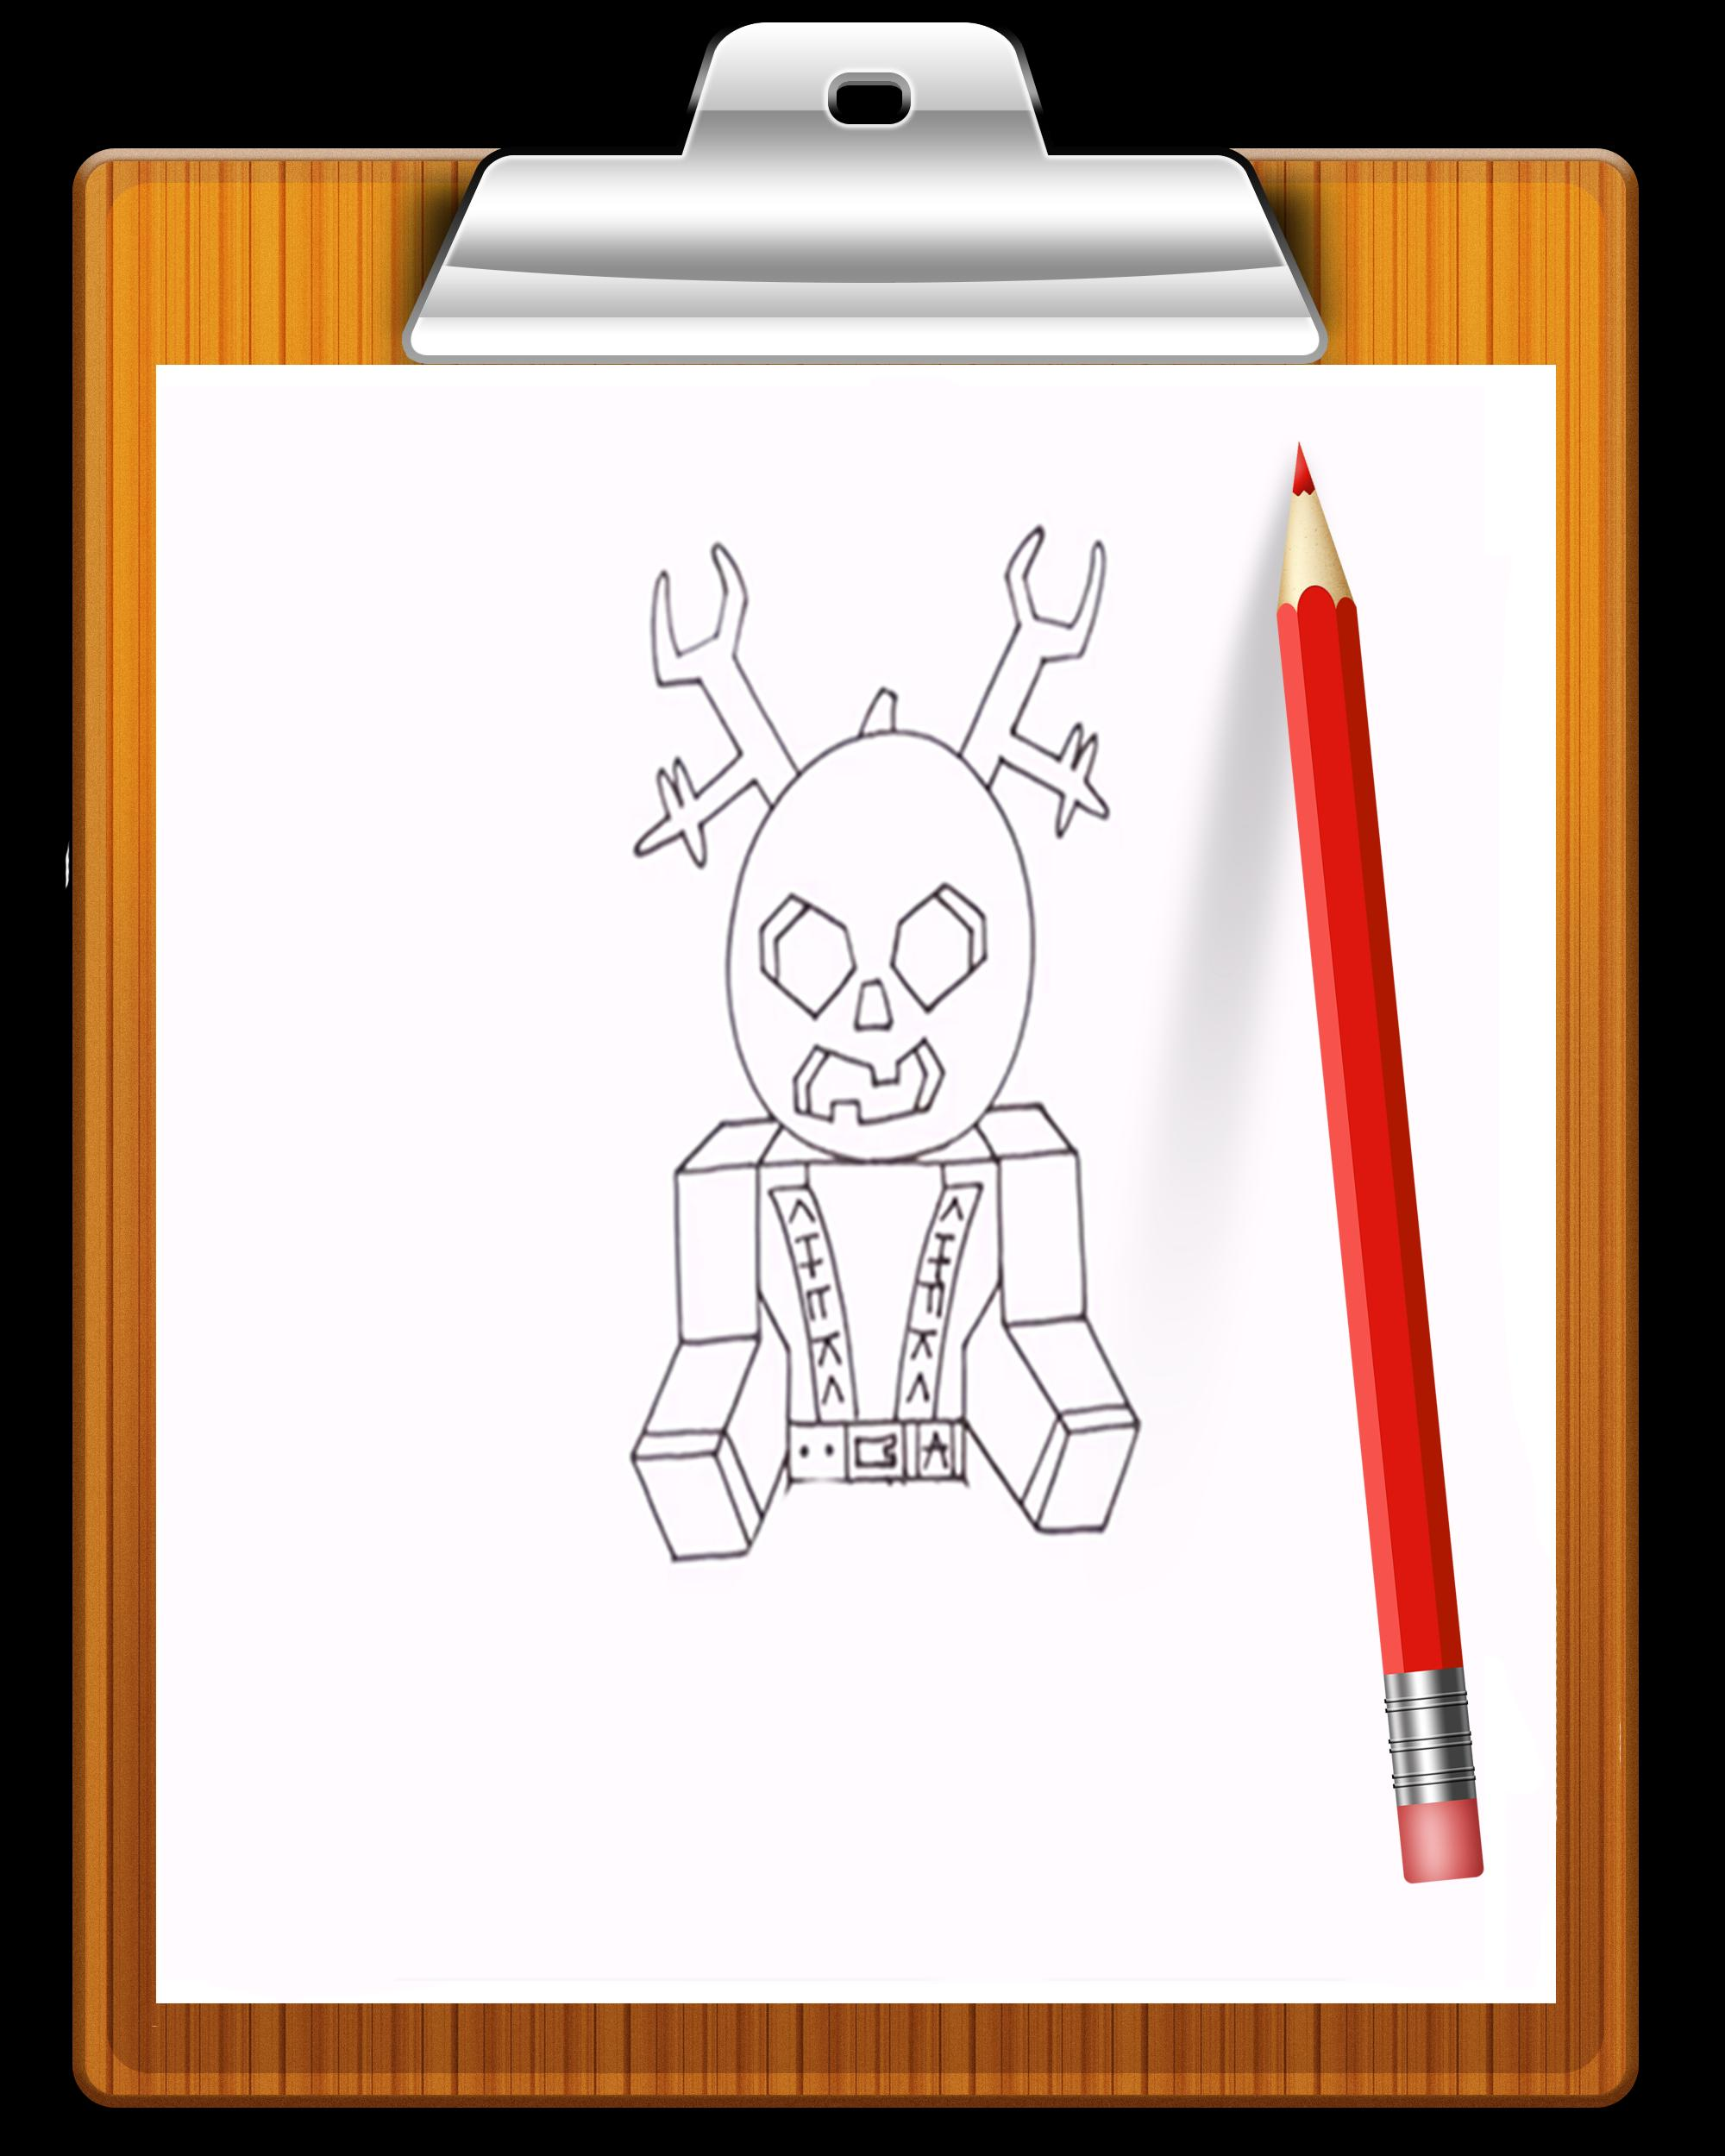 How To Draw Roblox For Android Apk Download